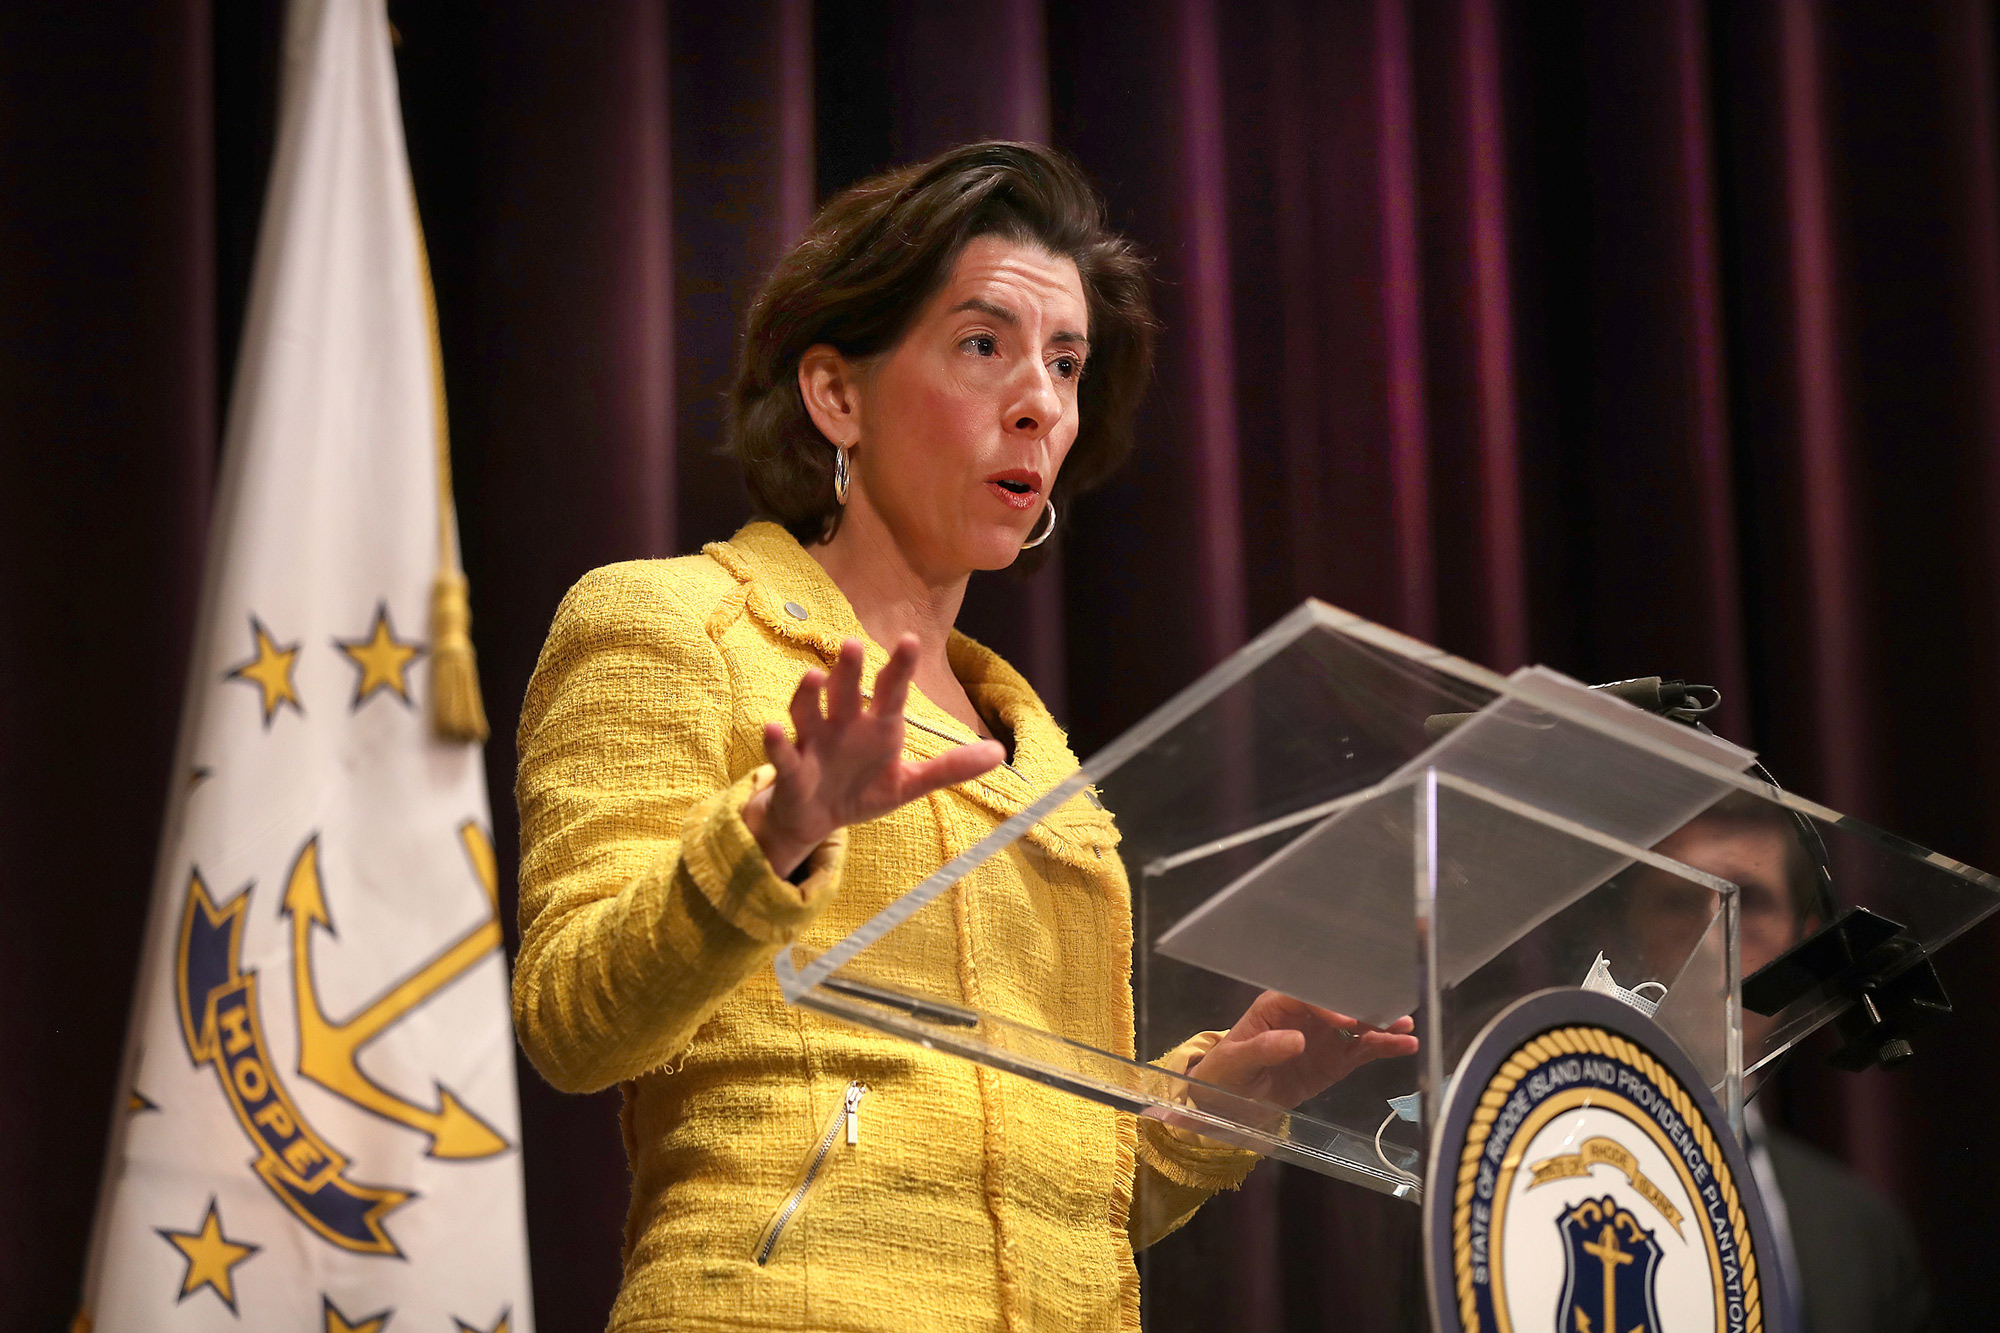 Rhode Island Governor Gina M. Raimondo speaks at a news conference at the Veterans Memorial Auditorium in Providence, Rhode Island, on May 12.